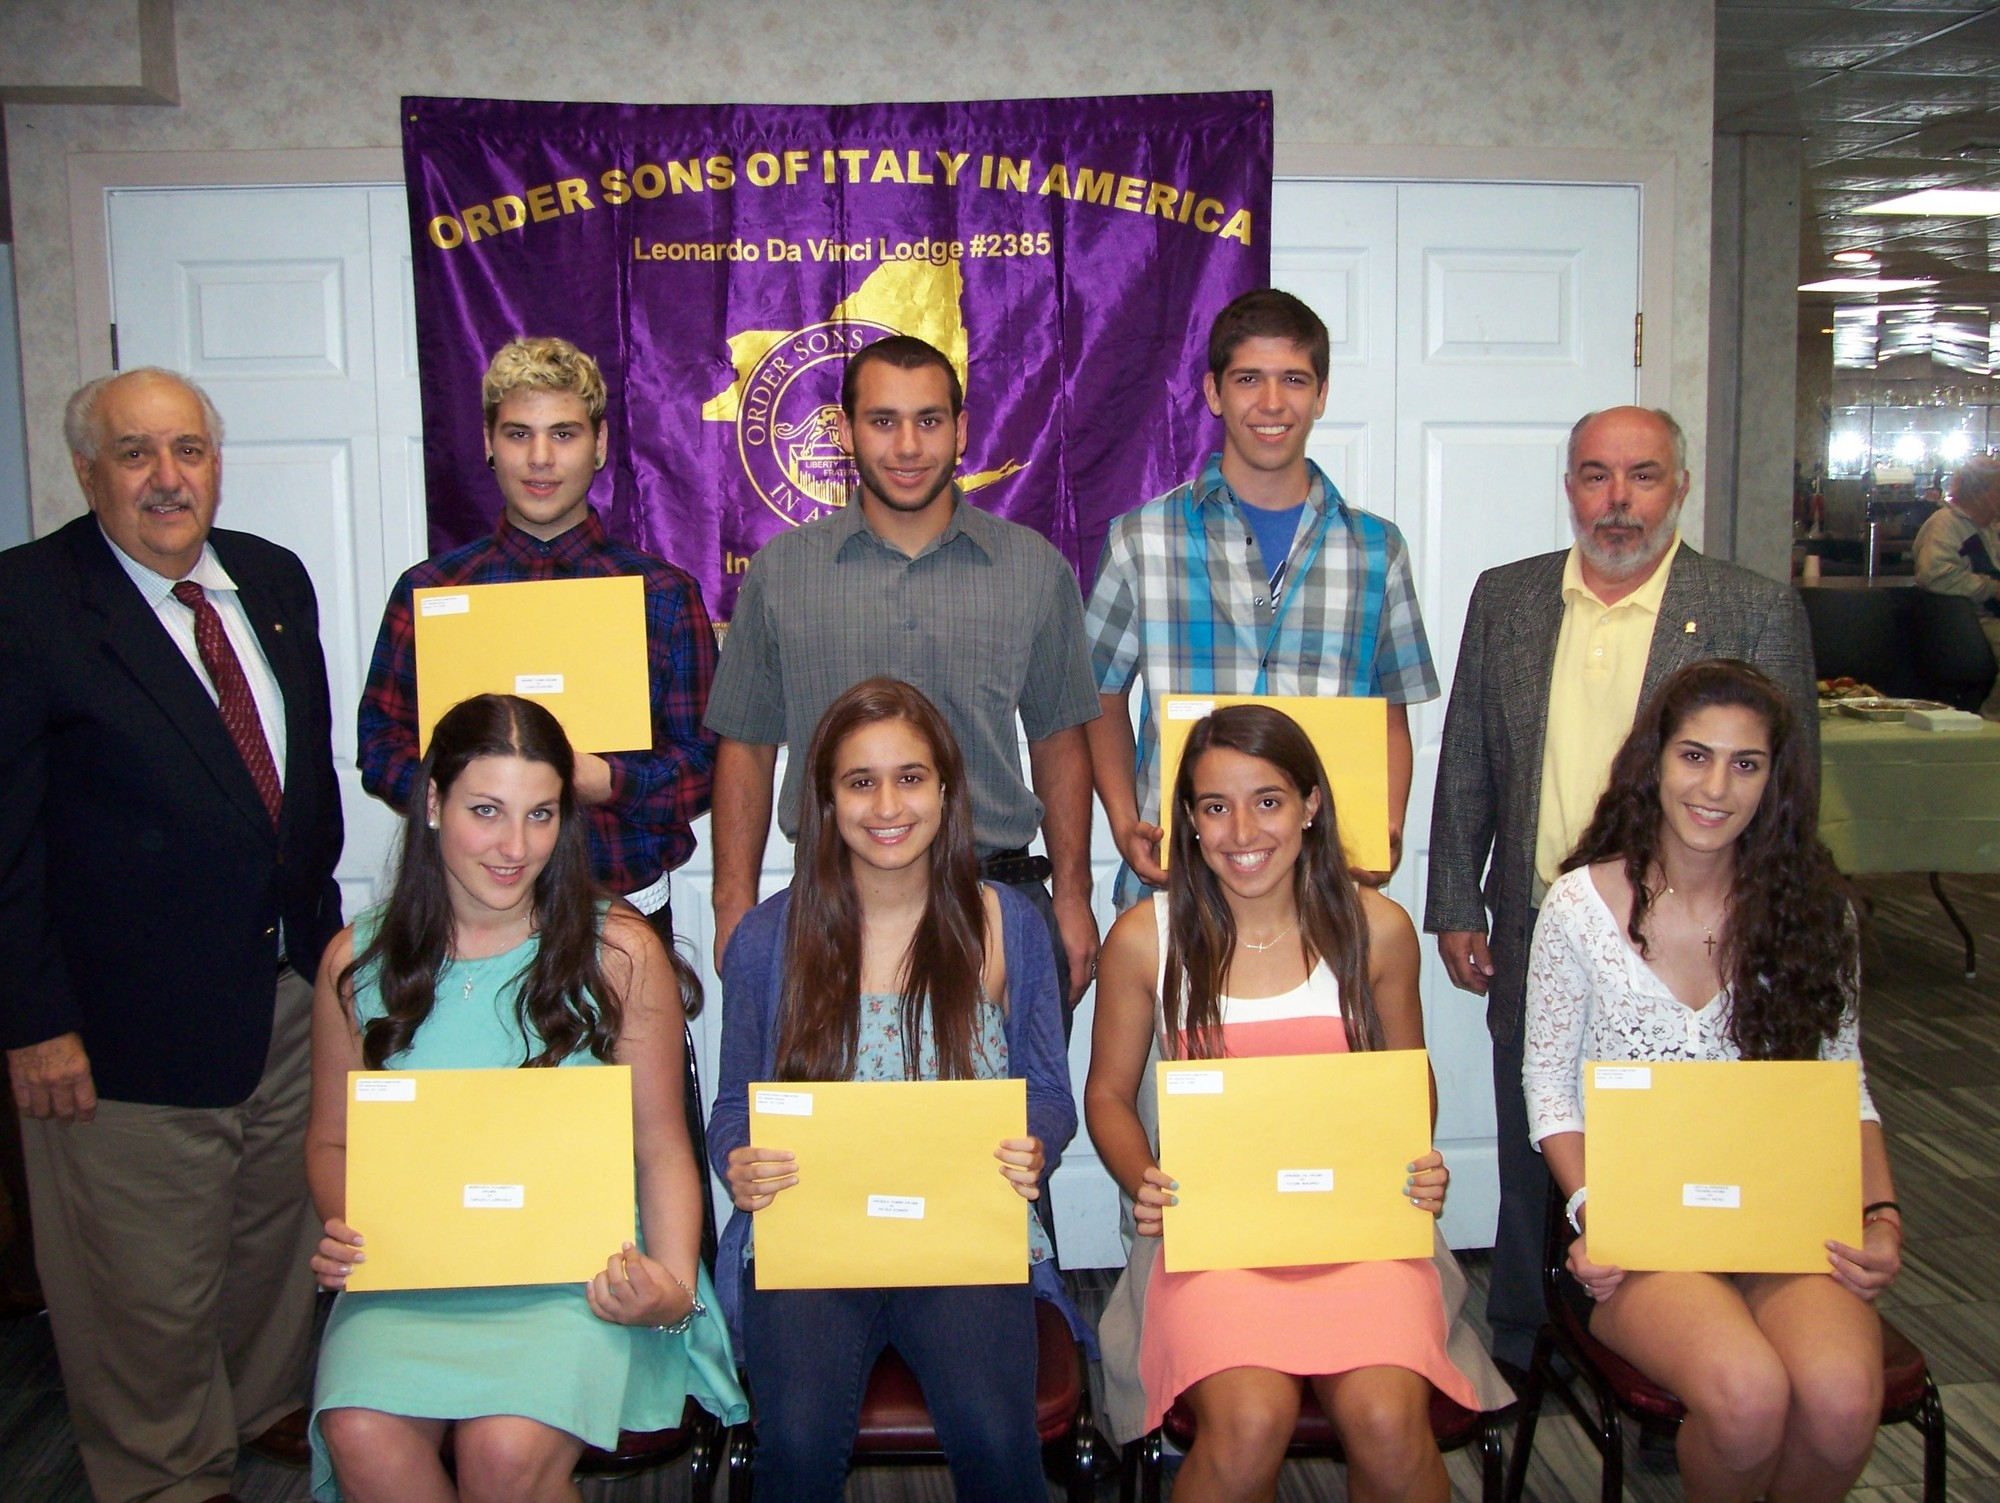 Leonardo da Vinci Lodge 2385 of Inwood gave out 10 student scholarships. Standing from left, Lodge Scholarship Chairman Peter Capozzi, Luigi Ciavolino, Florian Capobianco and Joseph Farese, and Lodge President Joseph Squitieri. Seated from left, Chelsea Campanile, Nicole Fudrini, Valerie DeNapoli and Camile Picini. Jennifer Holtzer, James G. Harrison and Alexis Scarandino also received scholarships.